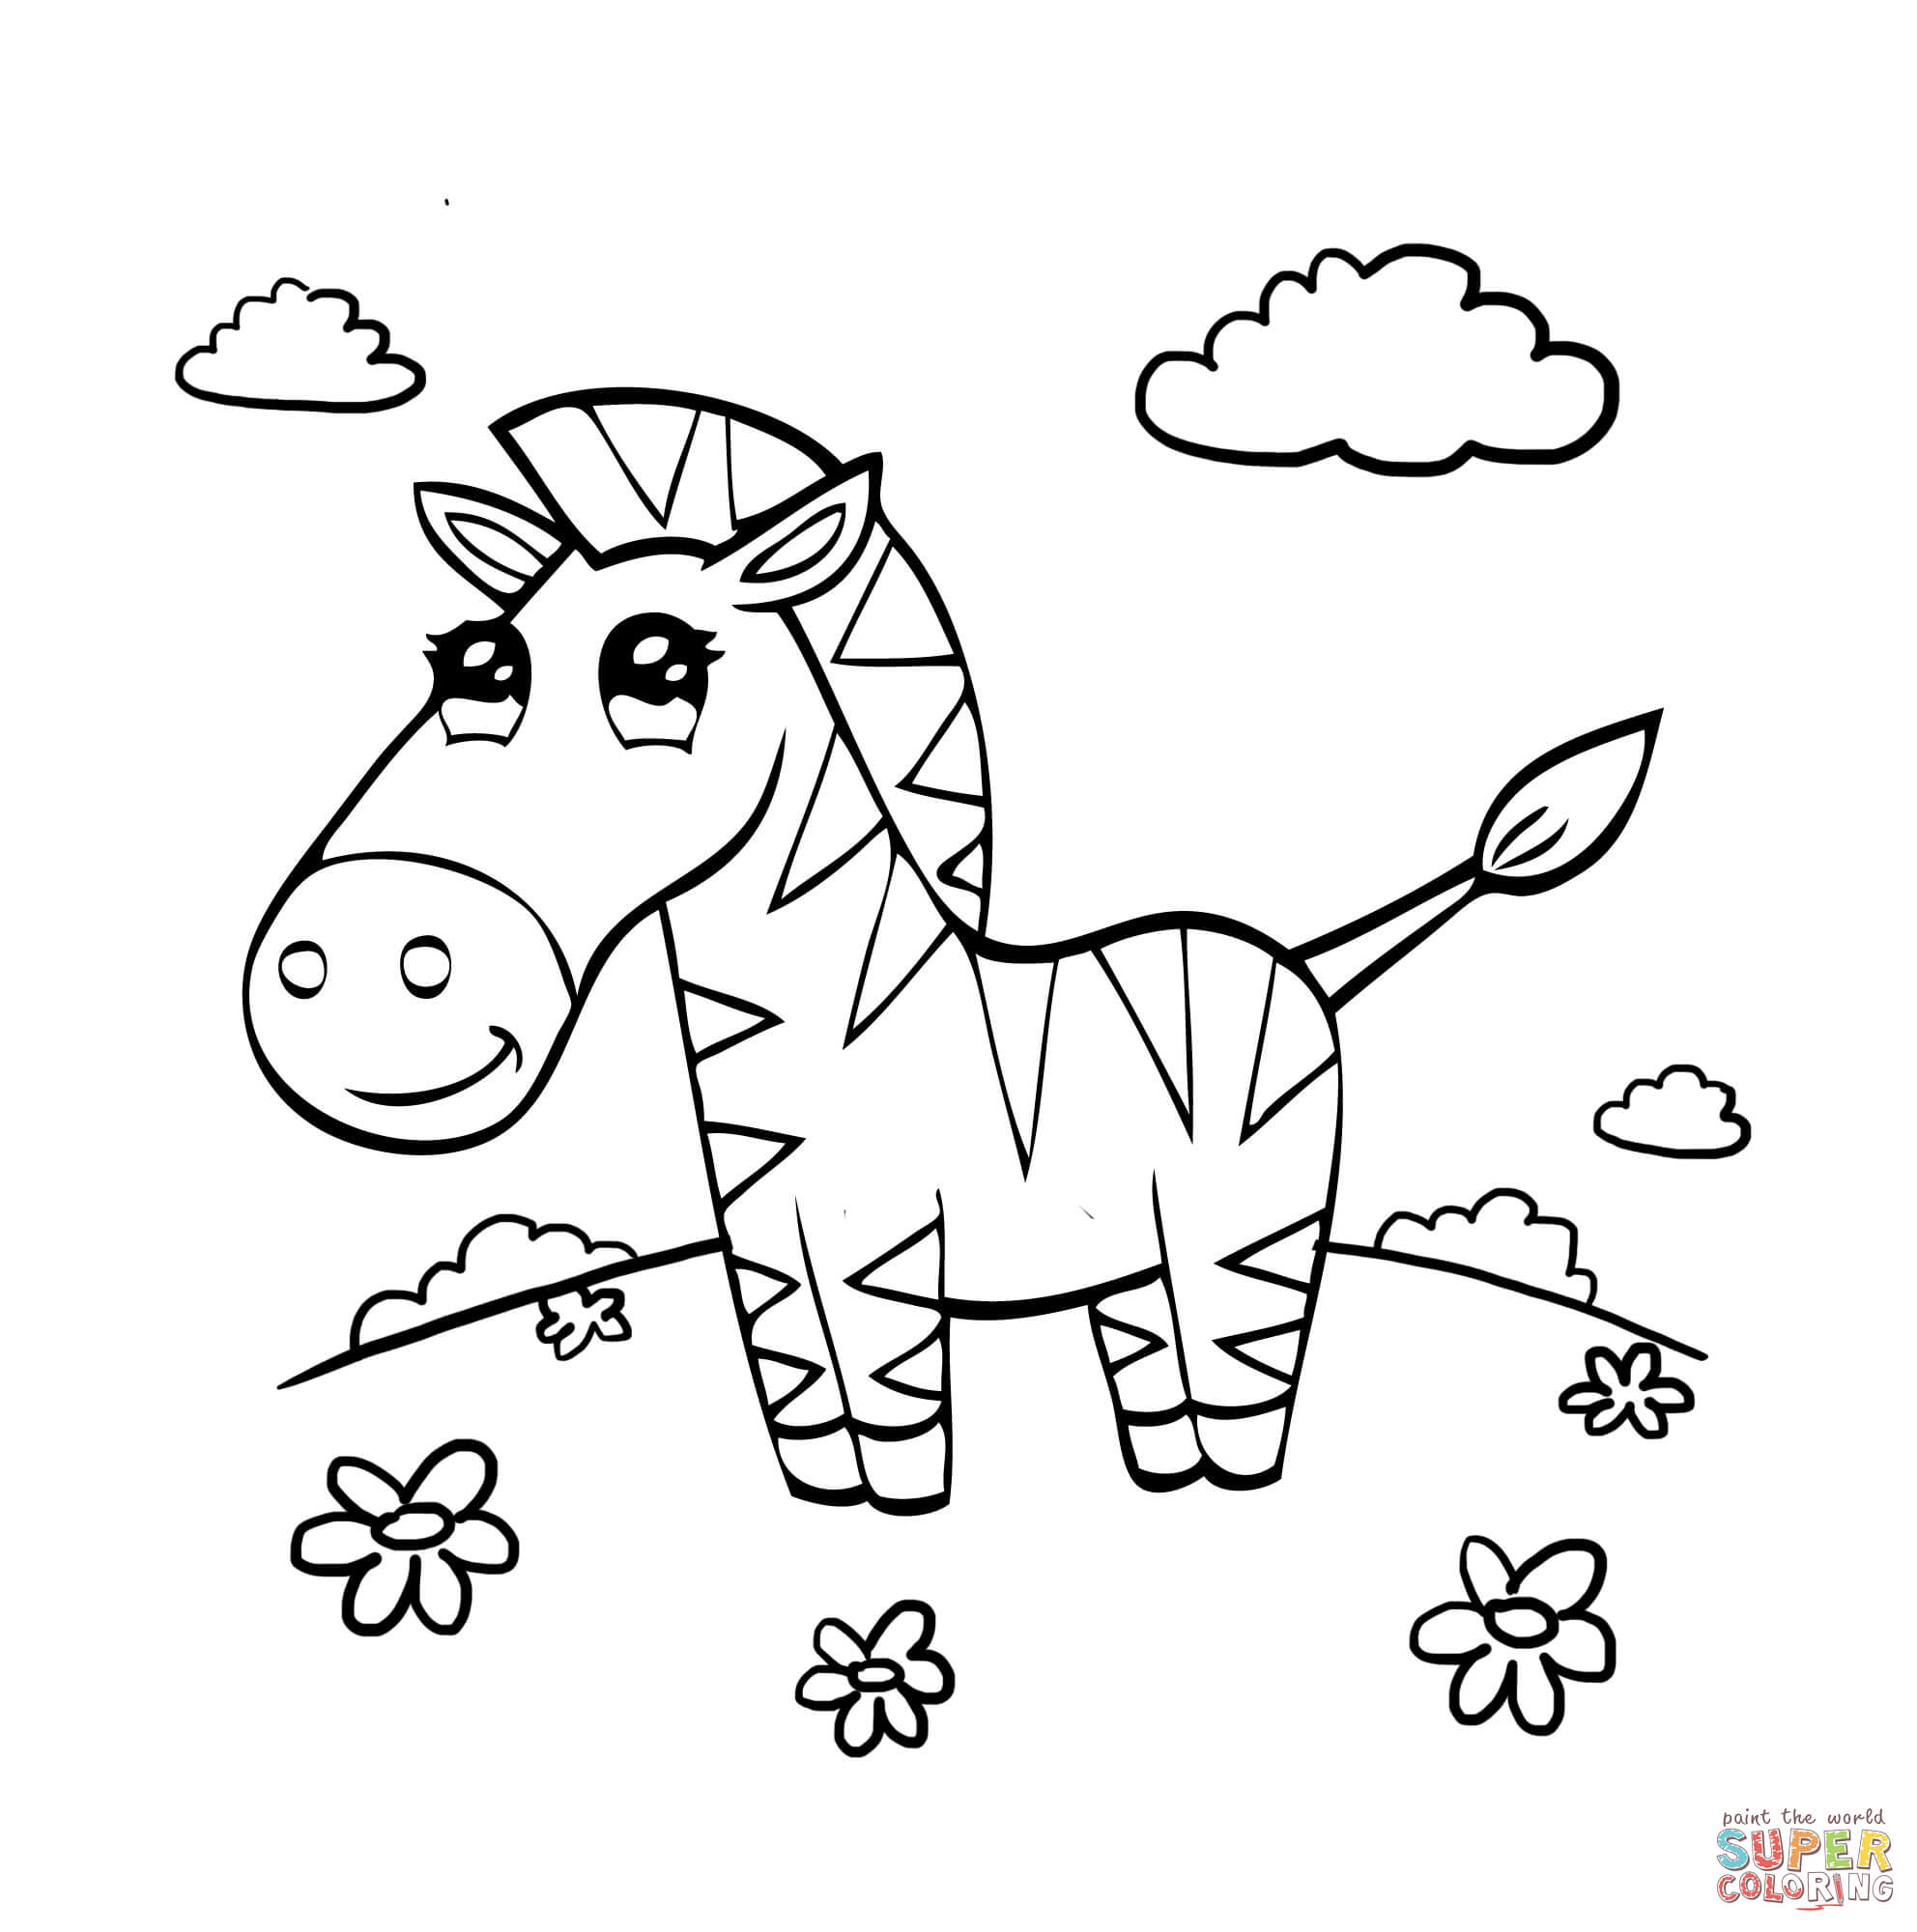 zebra print coloring pages free zebra coloring pages for adults printable to print zebra pages coloring